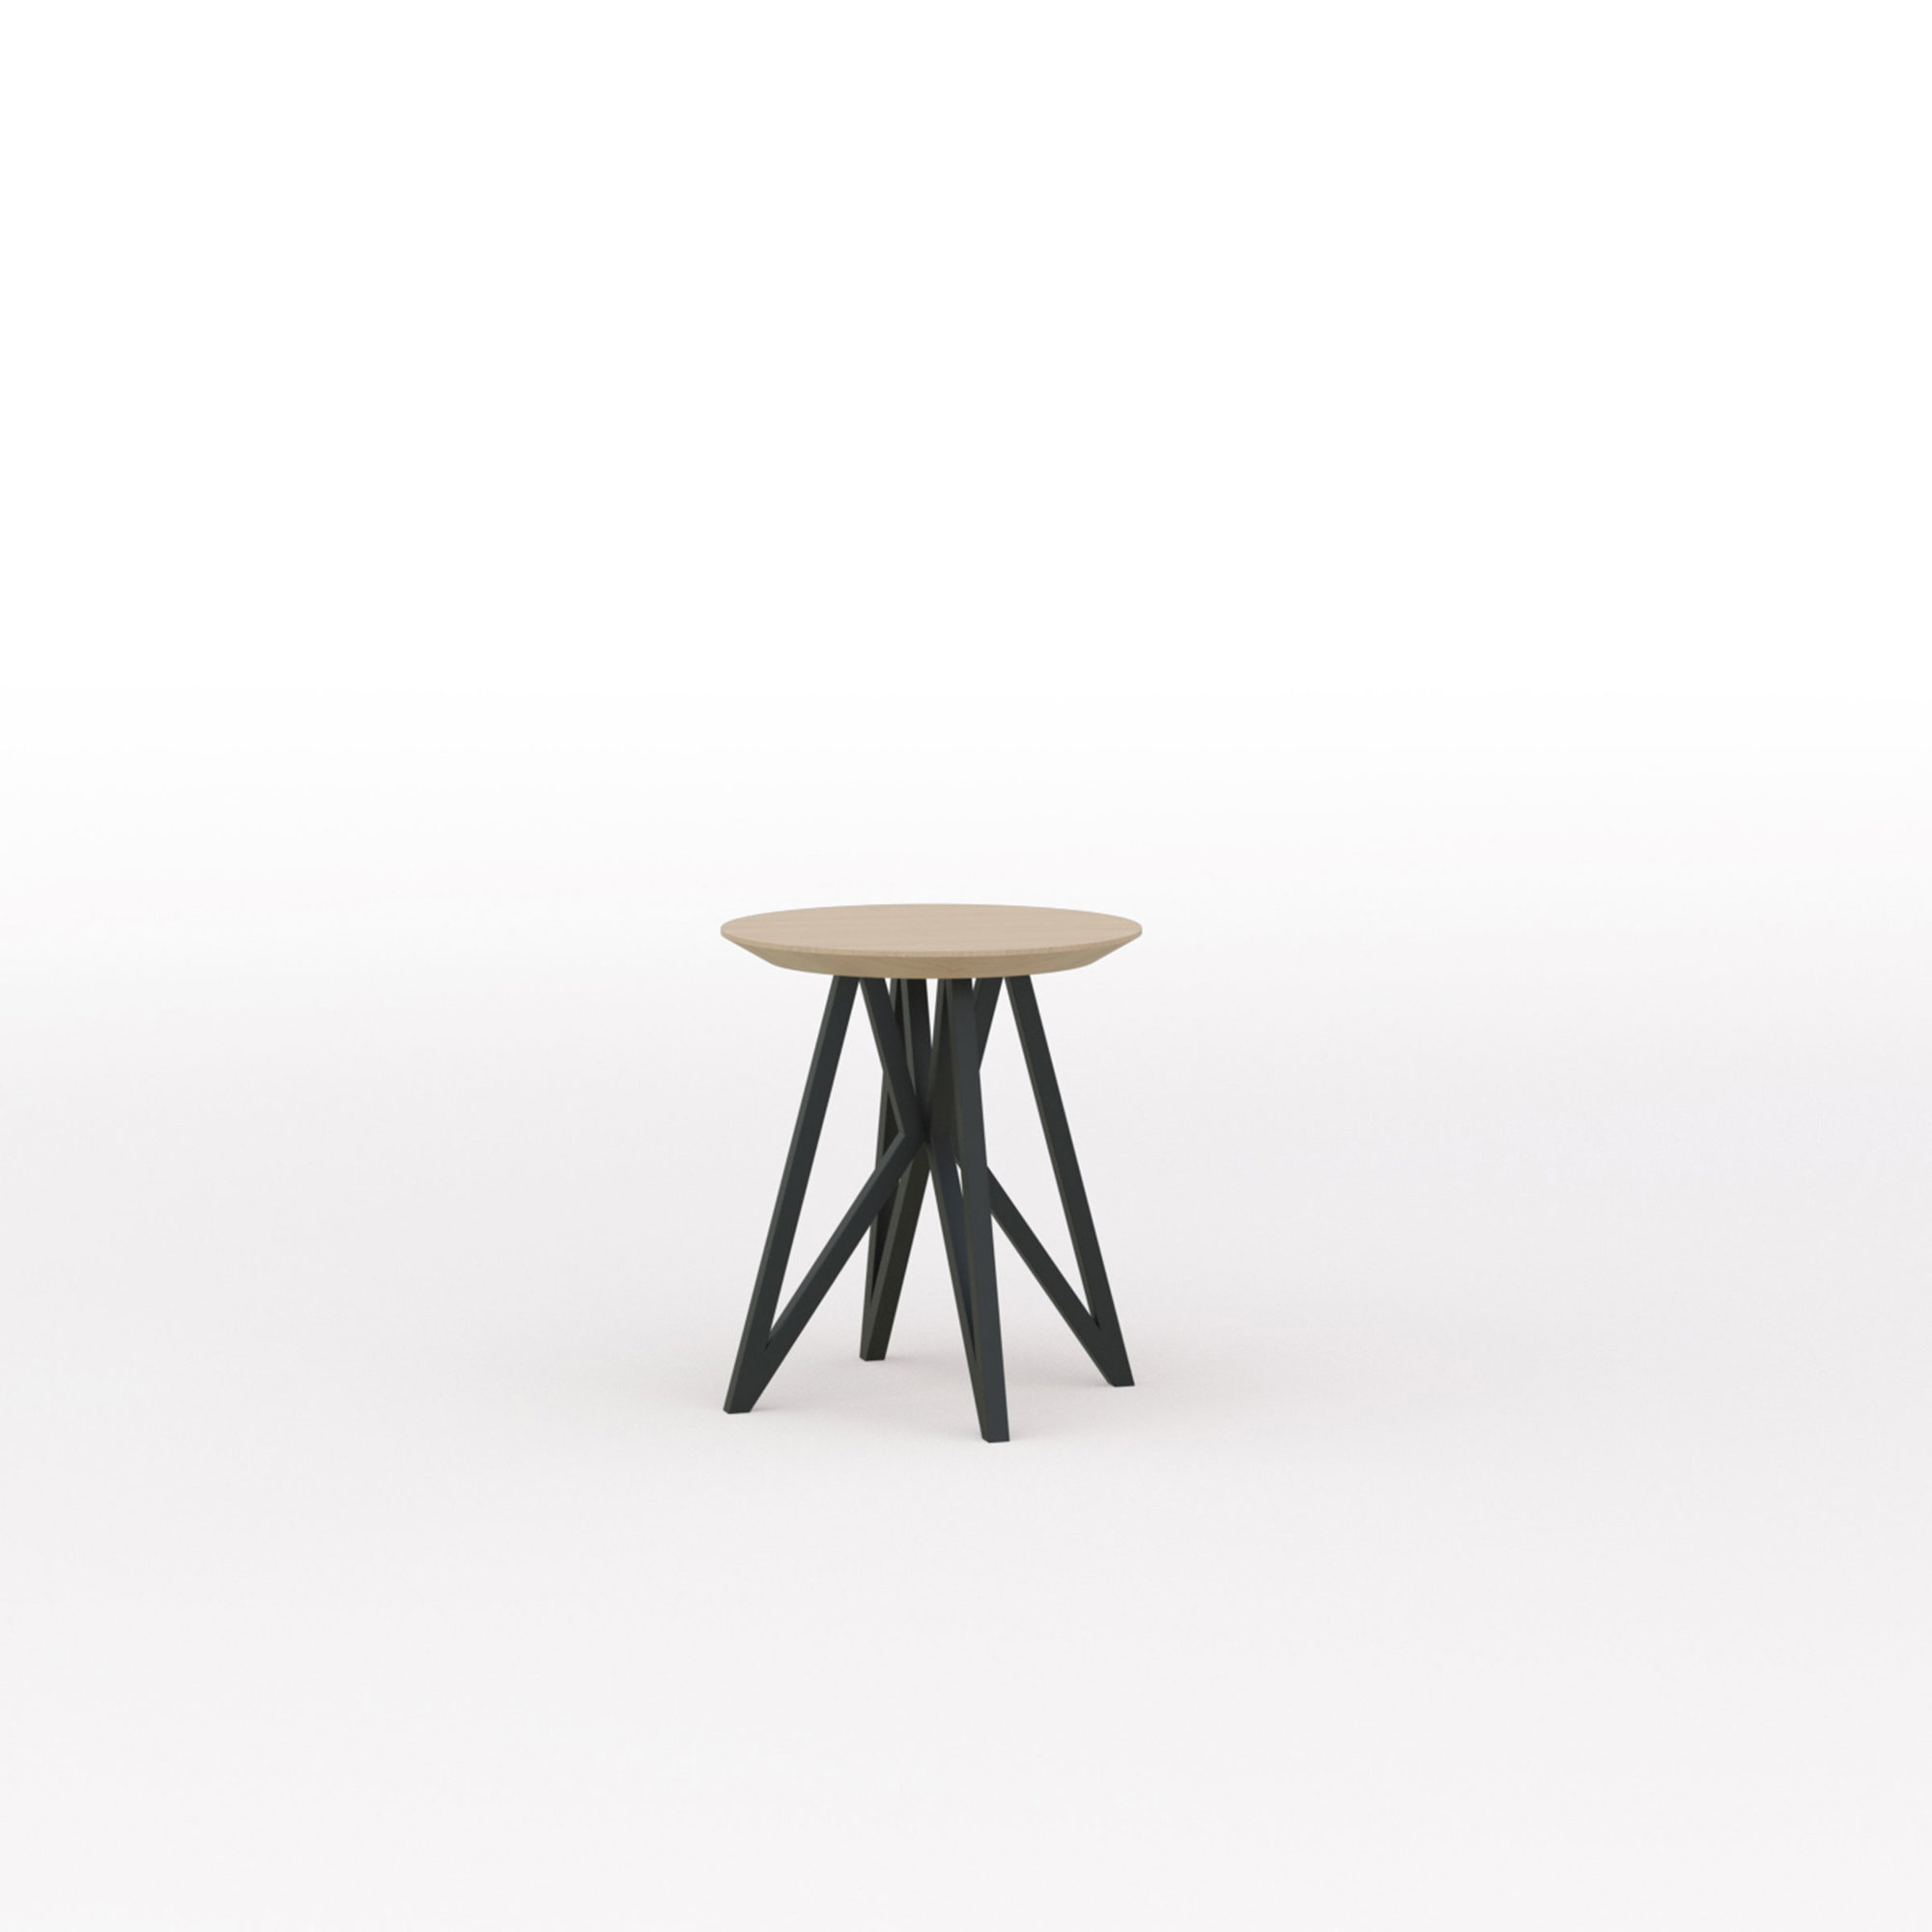 Design salontafel | Butterfly Quadpod Coffee Table Black | Oak hardwax oil natural light 3041 | Studio HENK | Listing_image